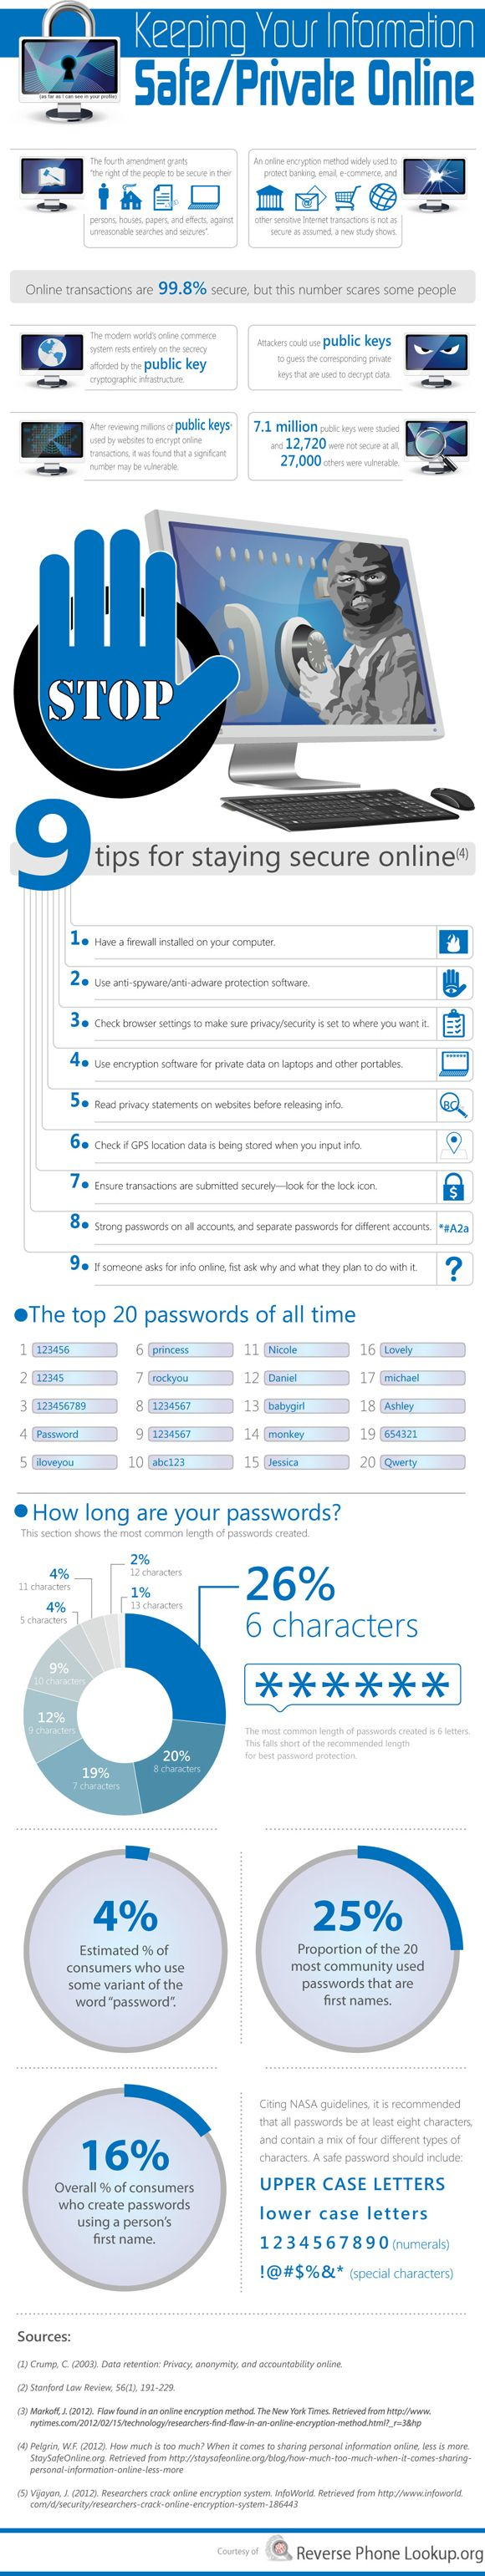 Pinned: 9 Tips For Staying Secure Online (Infographic Video). 흔히 쓰는 비번 중 7위가 rockyou, 14위가 monkey.